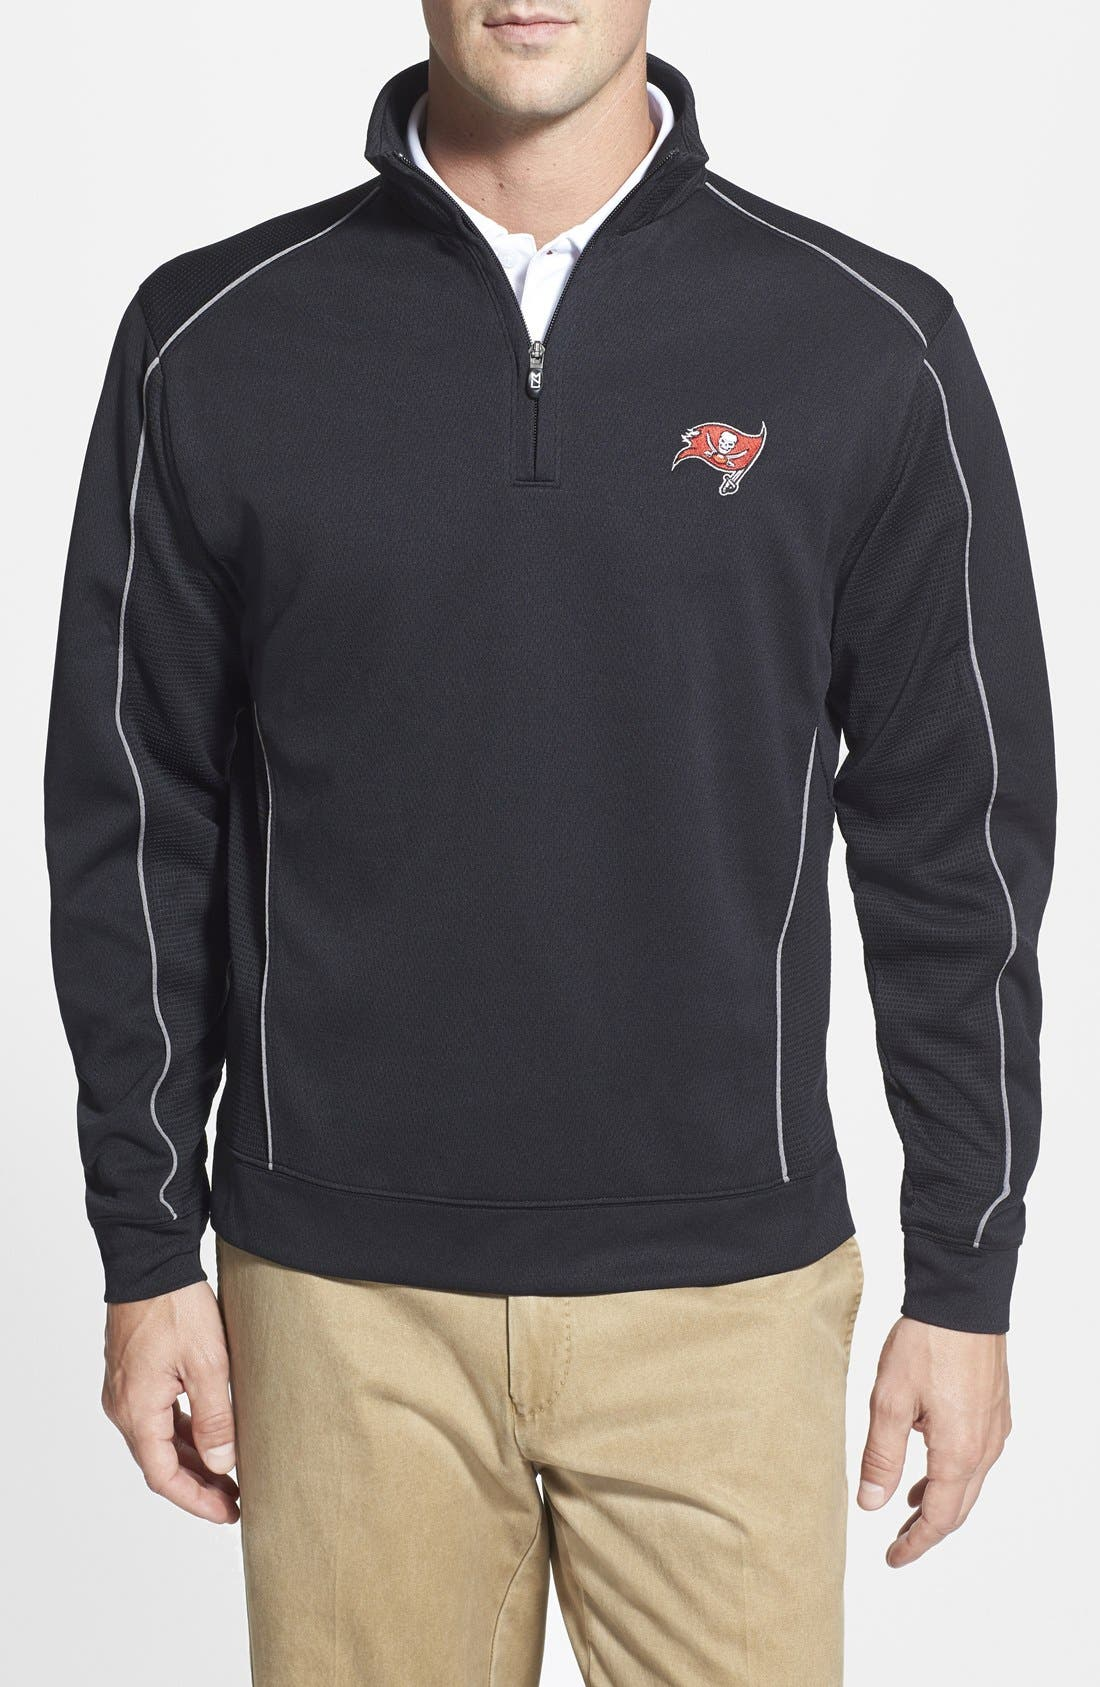 Tampa Bay Buccaneers - Edge DryTec Moisture Wicking Half Zip Pullover,                         Main,                         color, 001